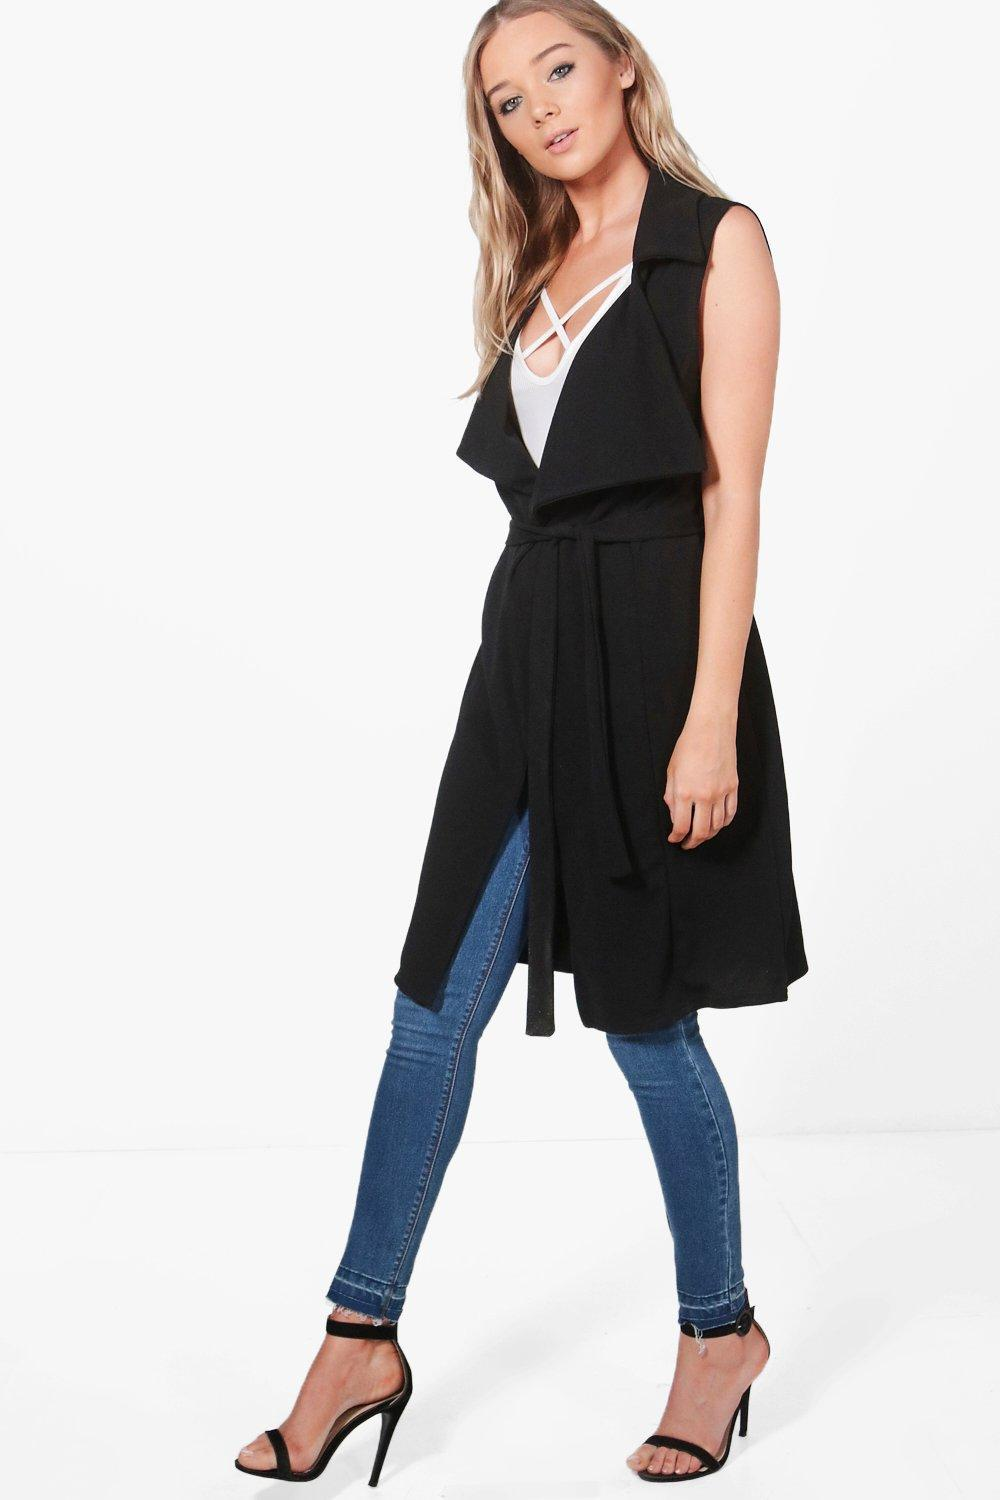 Lyst - Boohoo Zoe Shawl Collar Belted Duster in Black 401c5dfcf